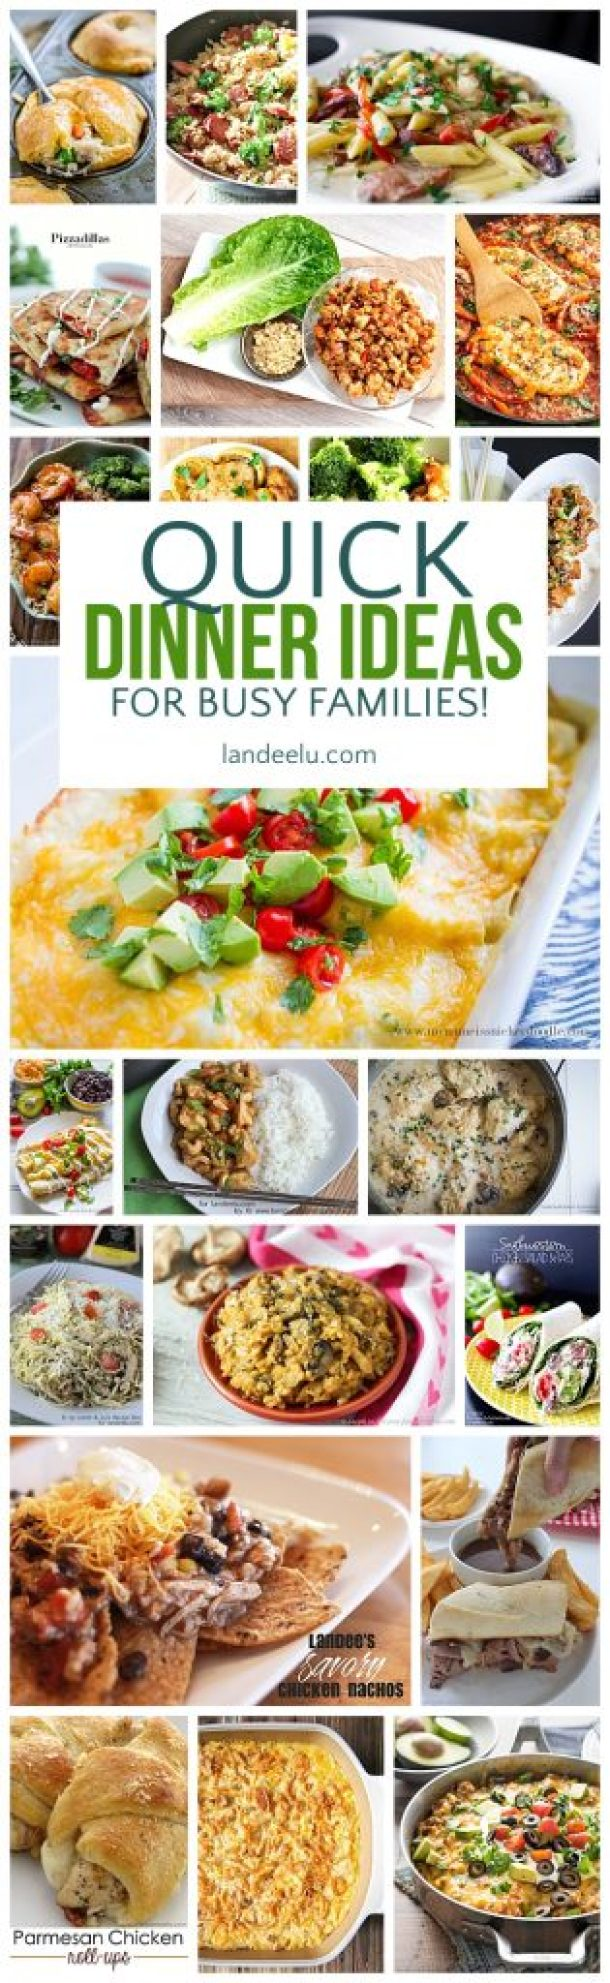 A TON of awesome quick dinner ideas for busy families. I can't wait to try these on my family!